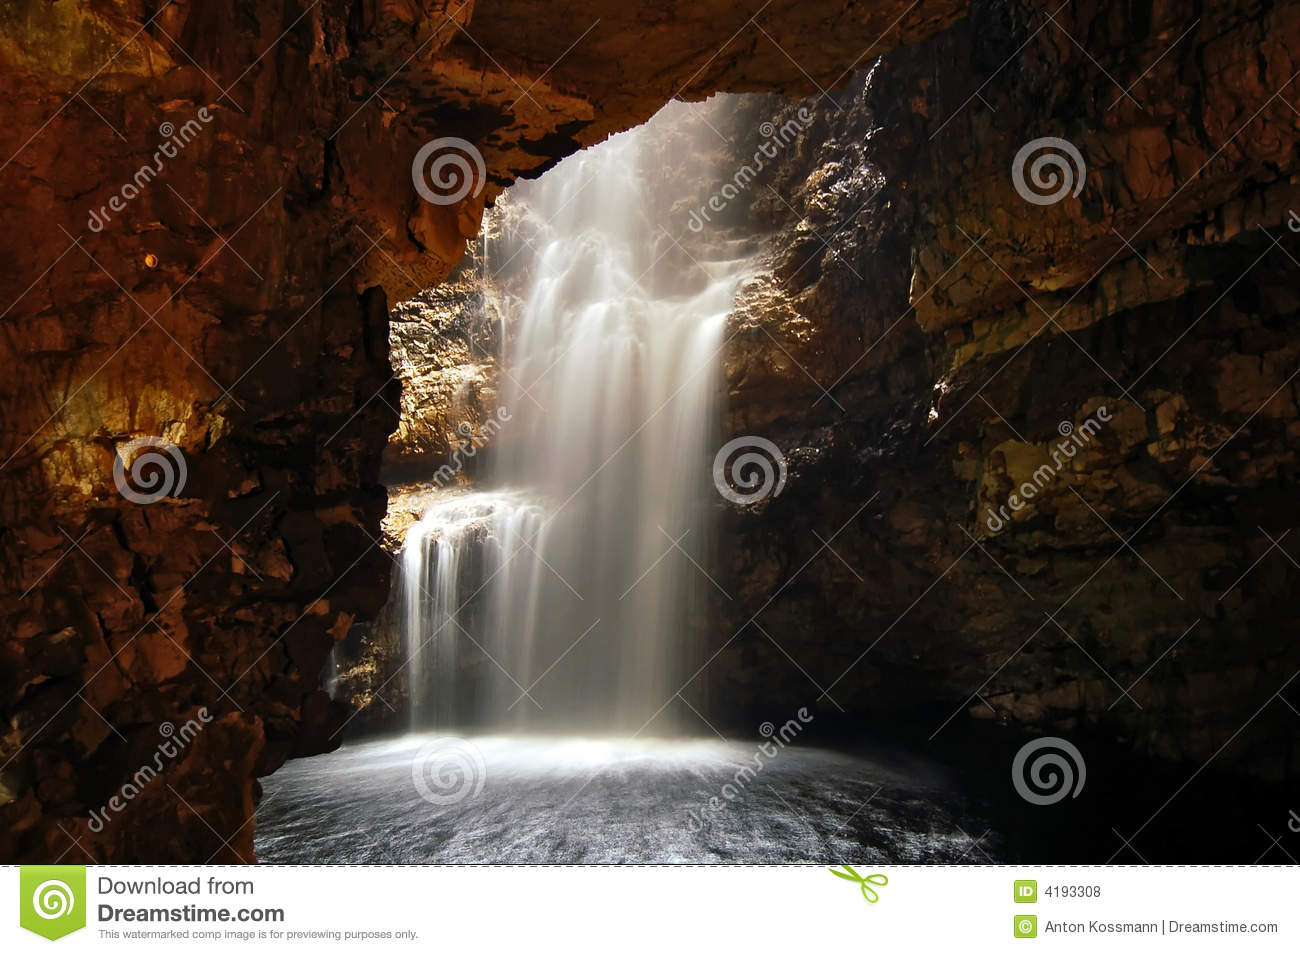 Waterfall in a Cave